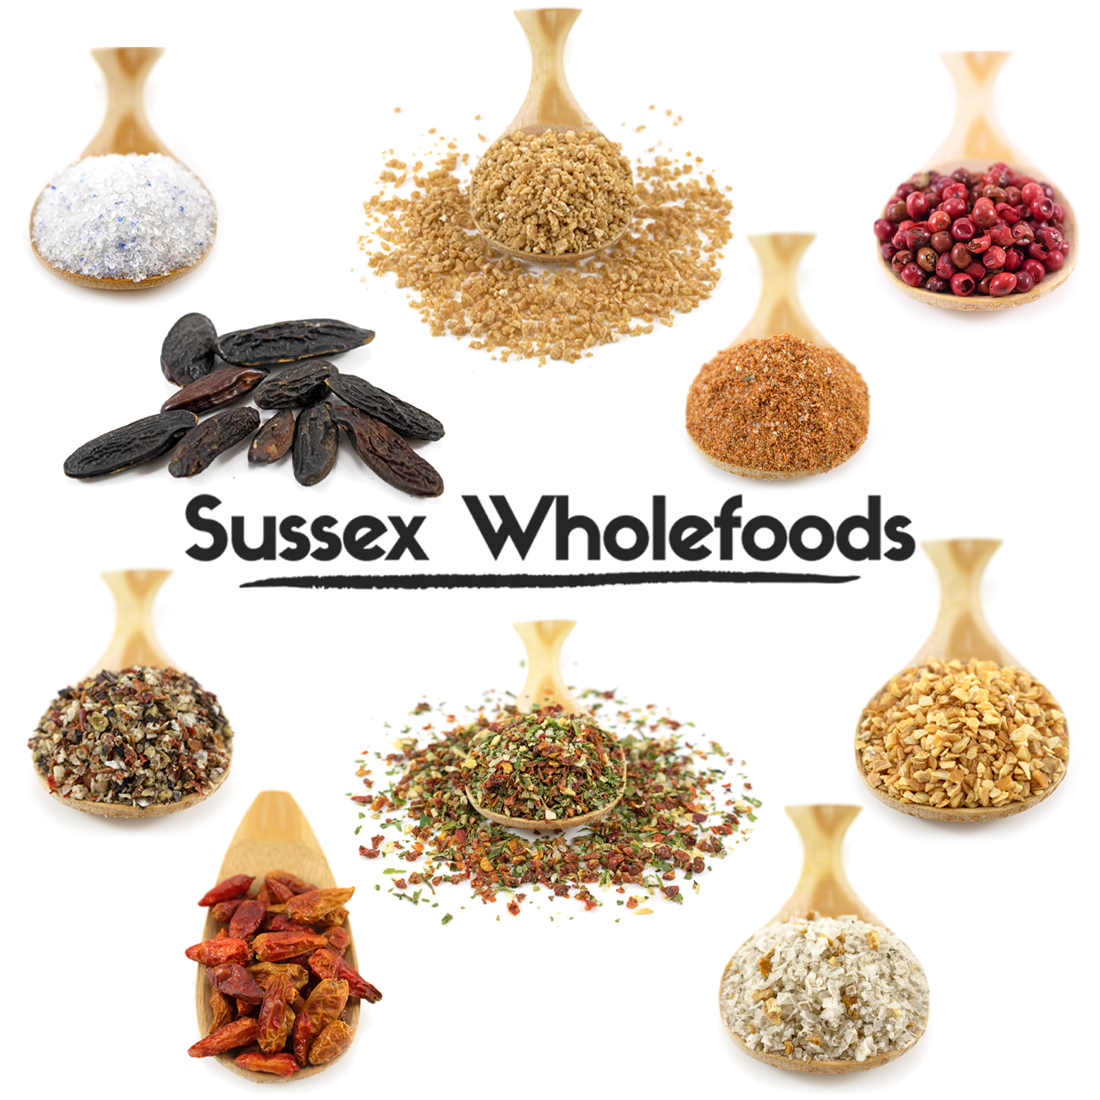 Sussex Wholefoods – an introduction to our range